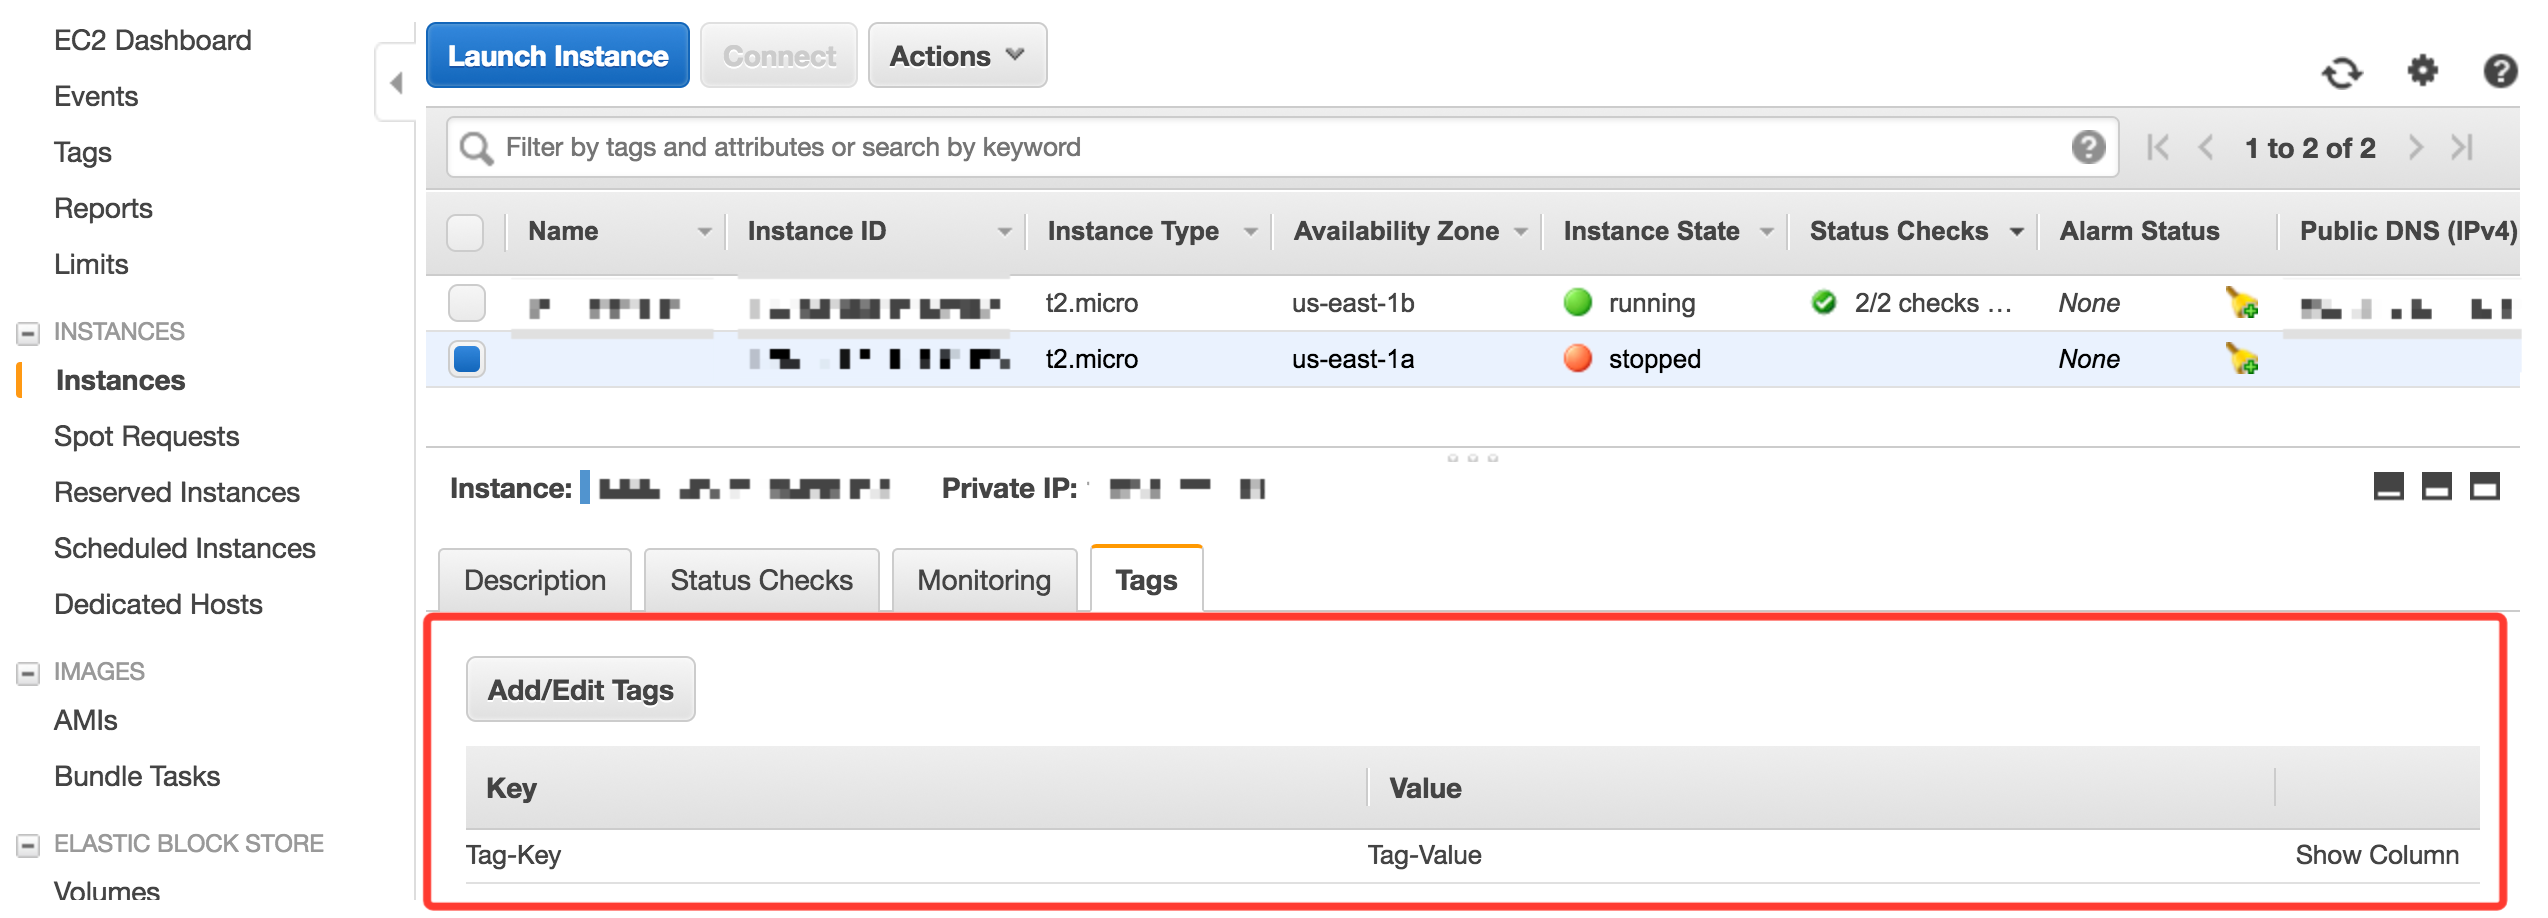 How do I pull my EC2 tags without using the AWS integration?